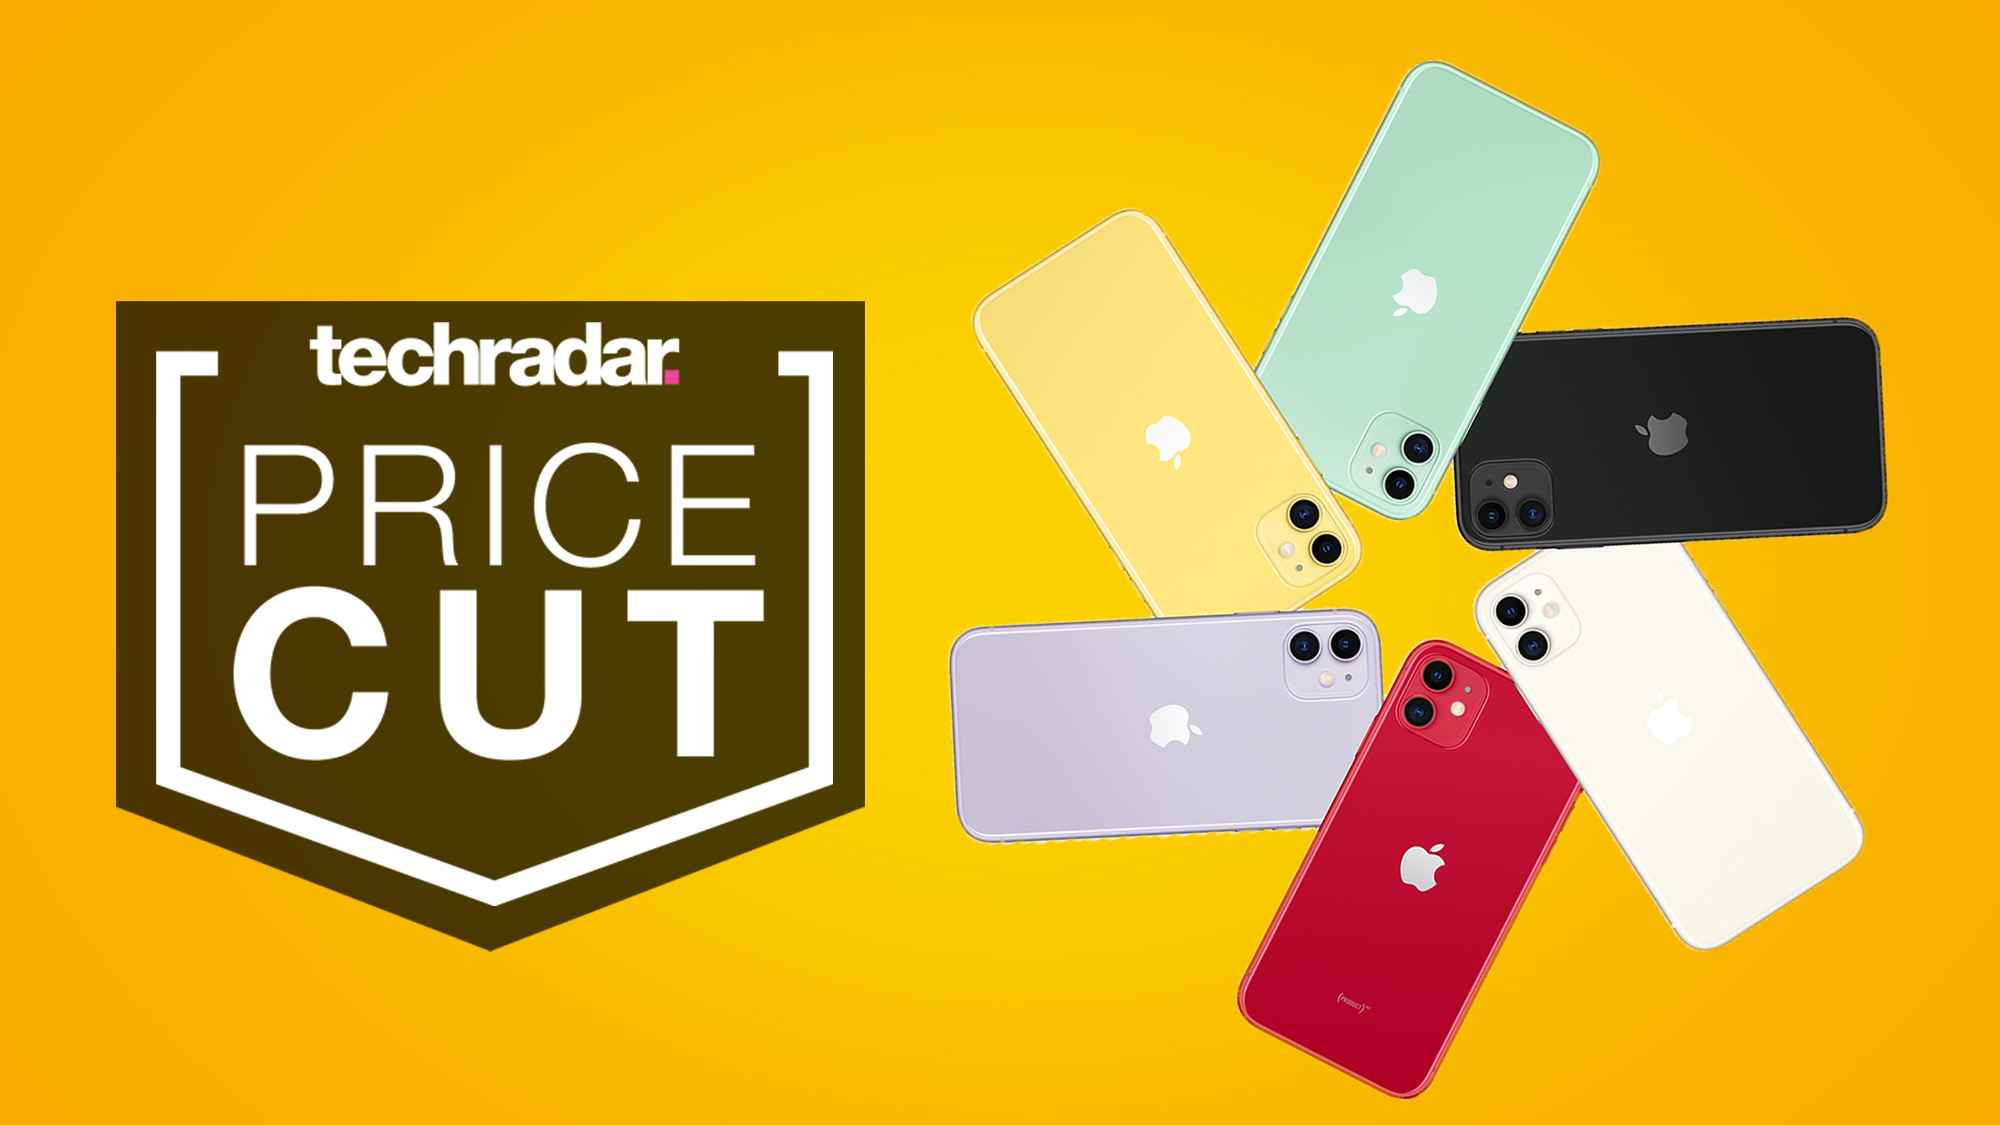 These awesome iPhone 11 deals on EE leave everything else in the dust